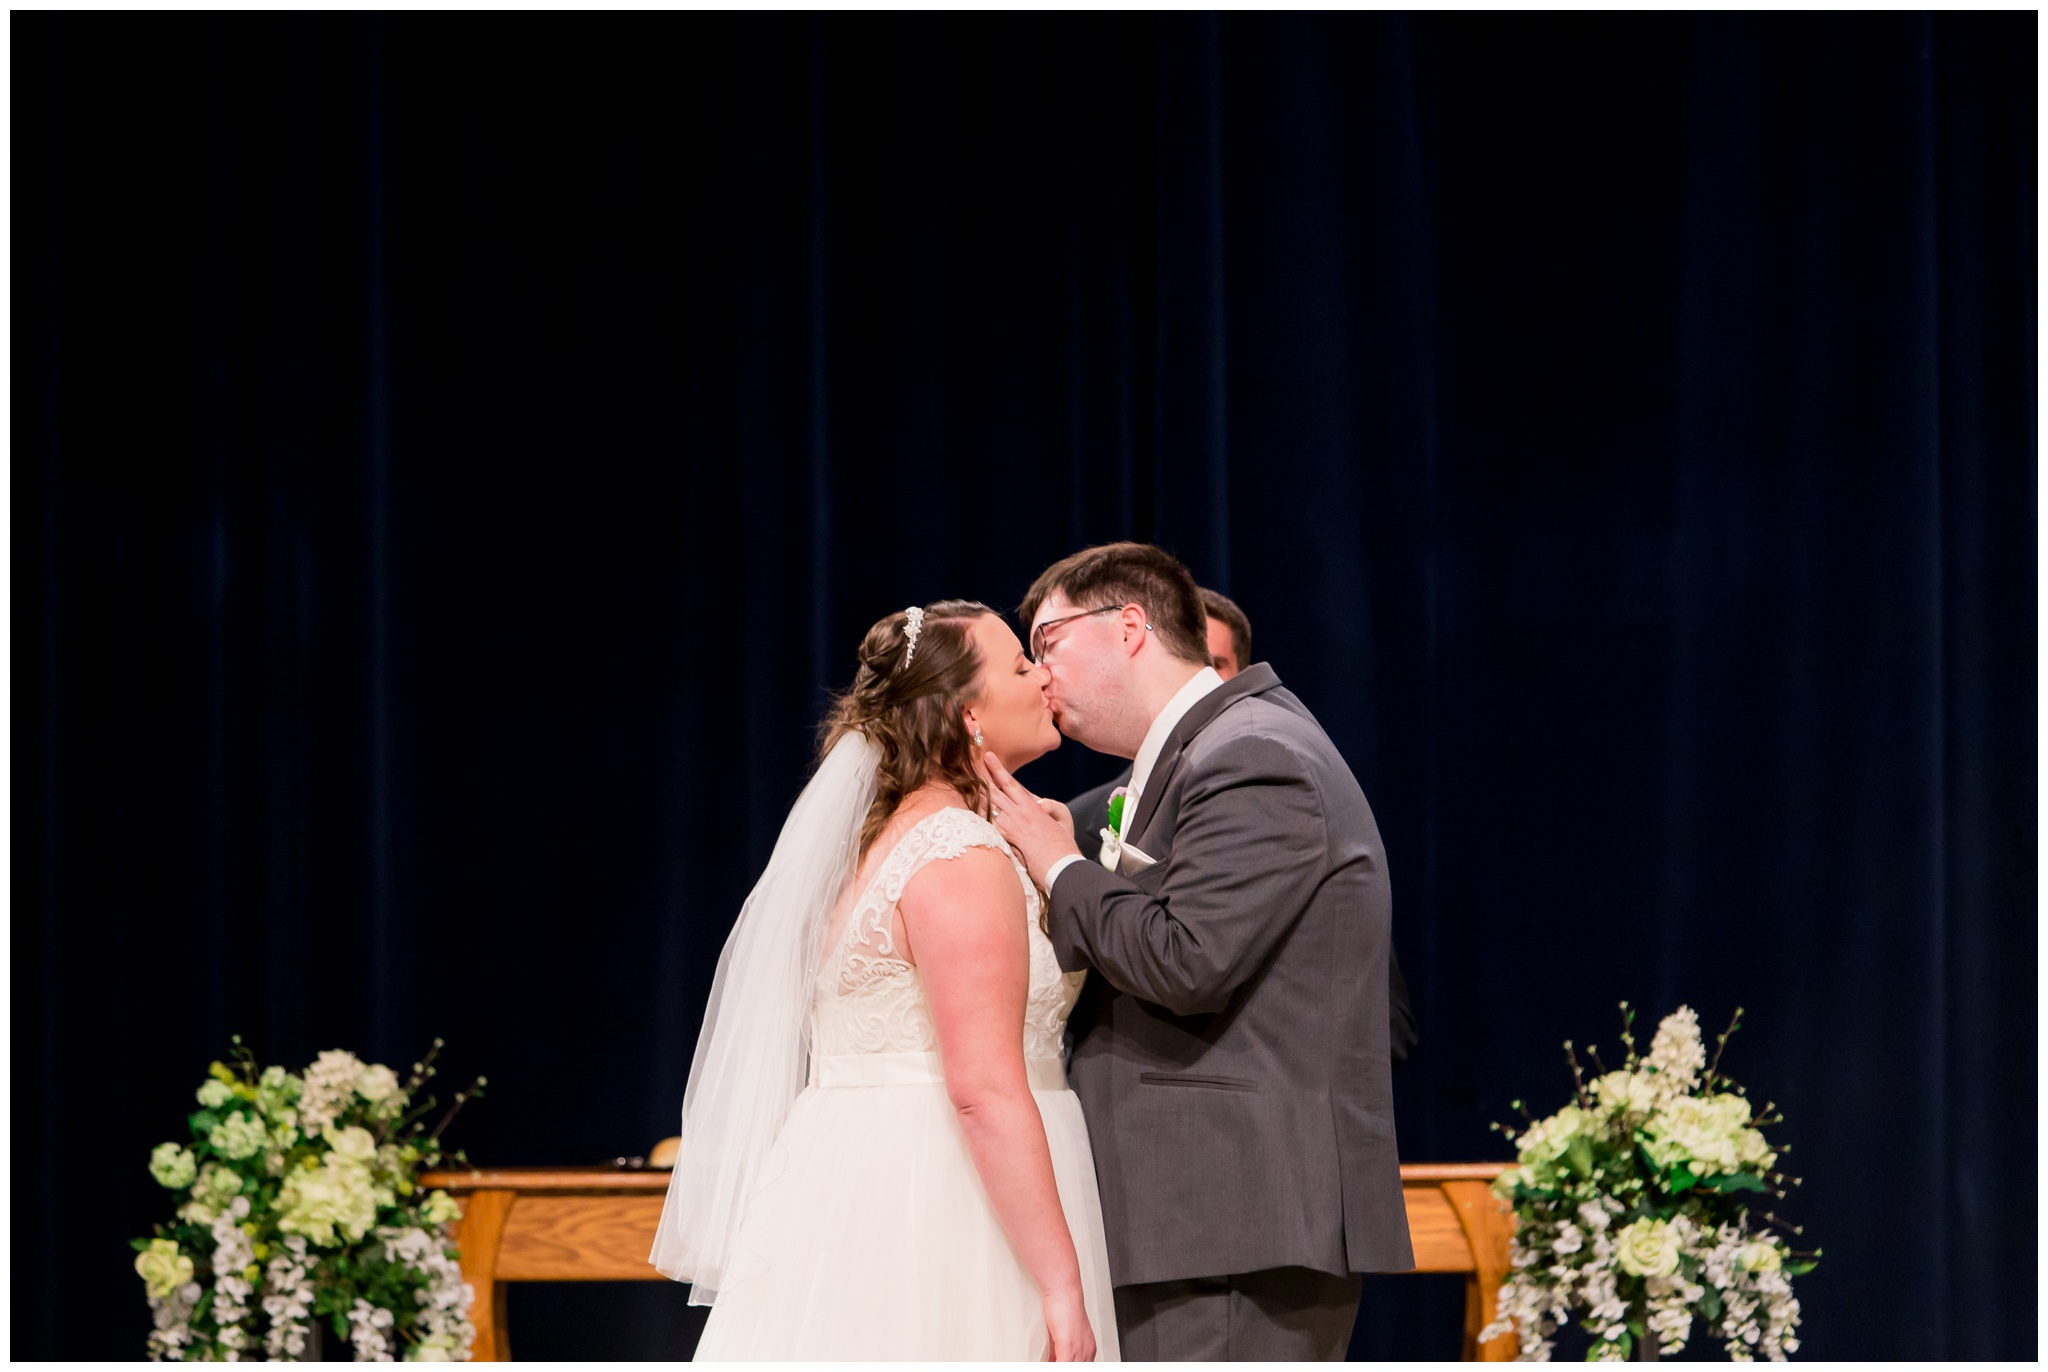 Crossroads Community Church wedding ceremony in Kokomo Indiana